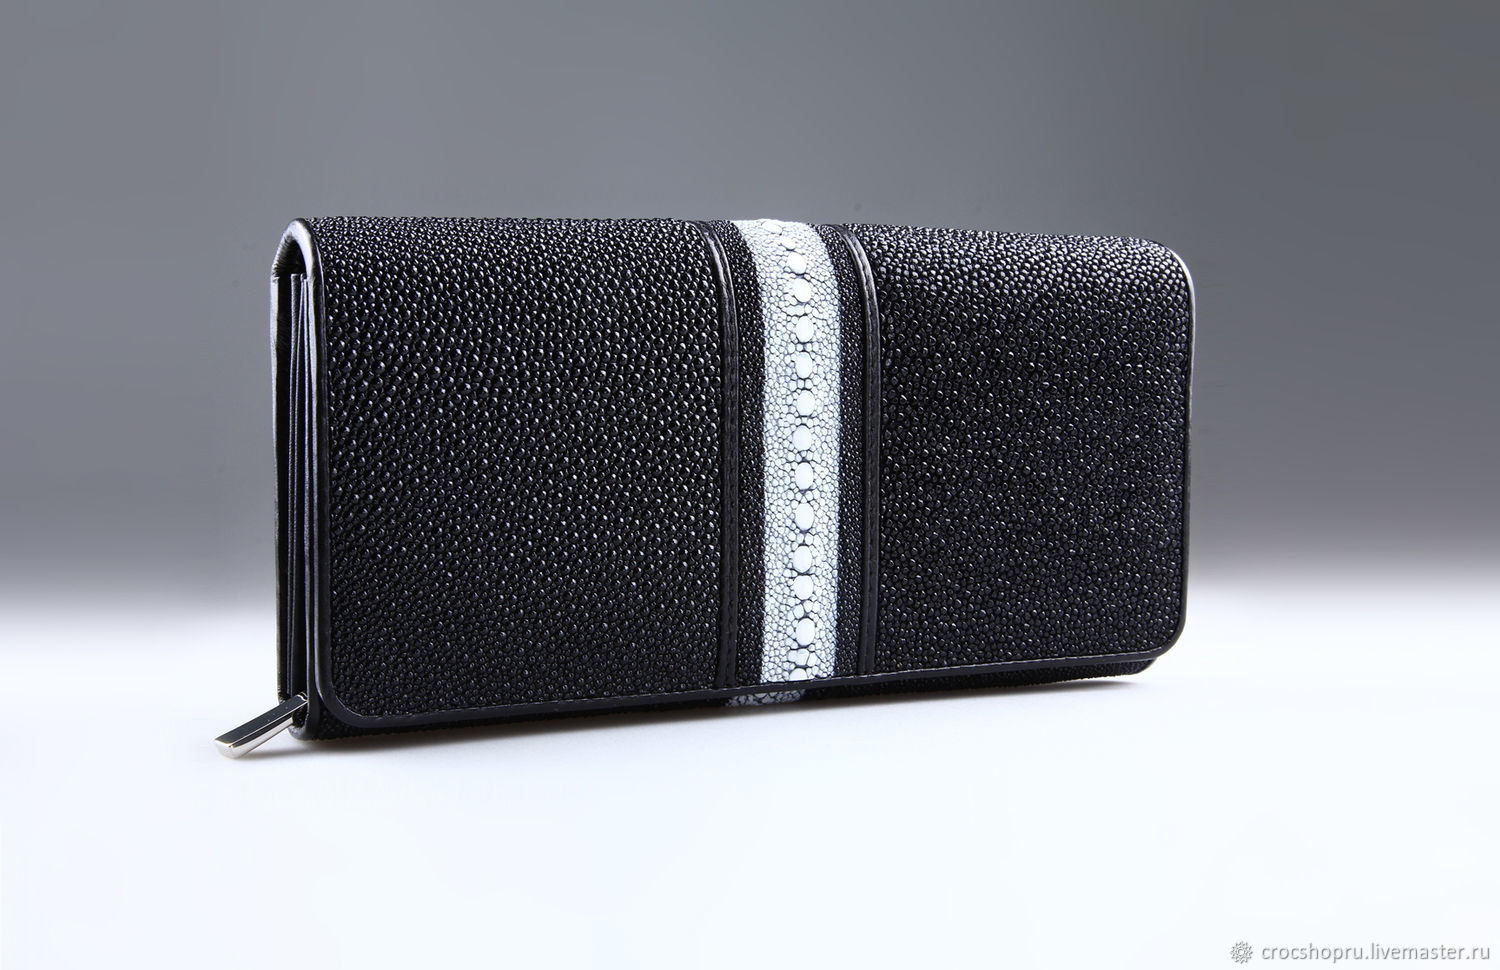 Stingray leather wallet IMC0010B, Wallets, Moscow,  Фото №1